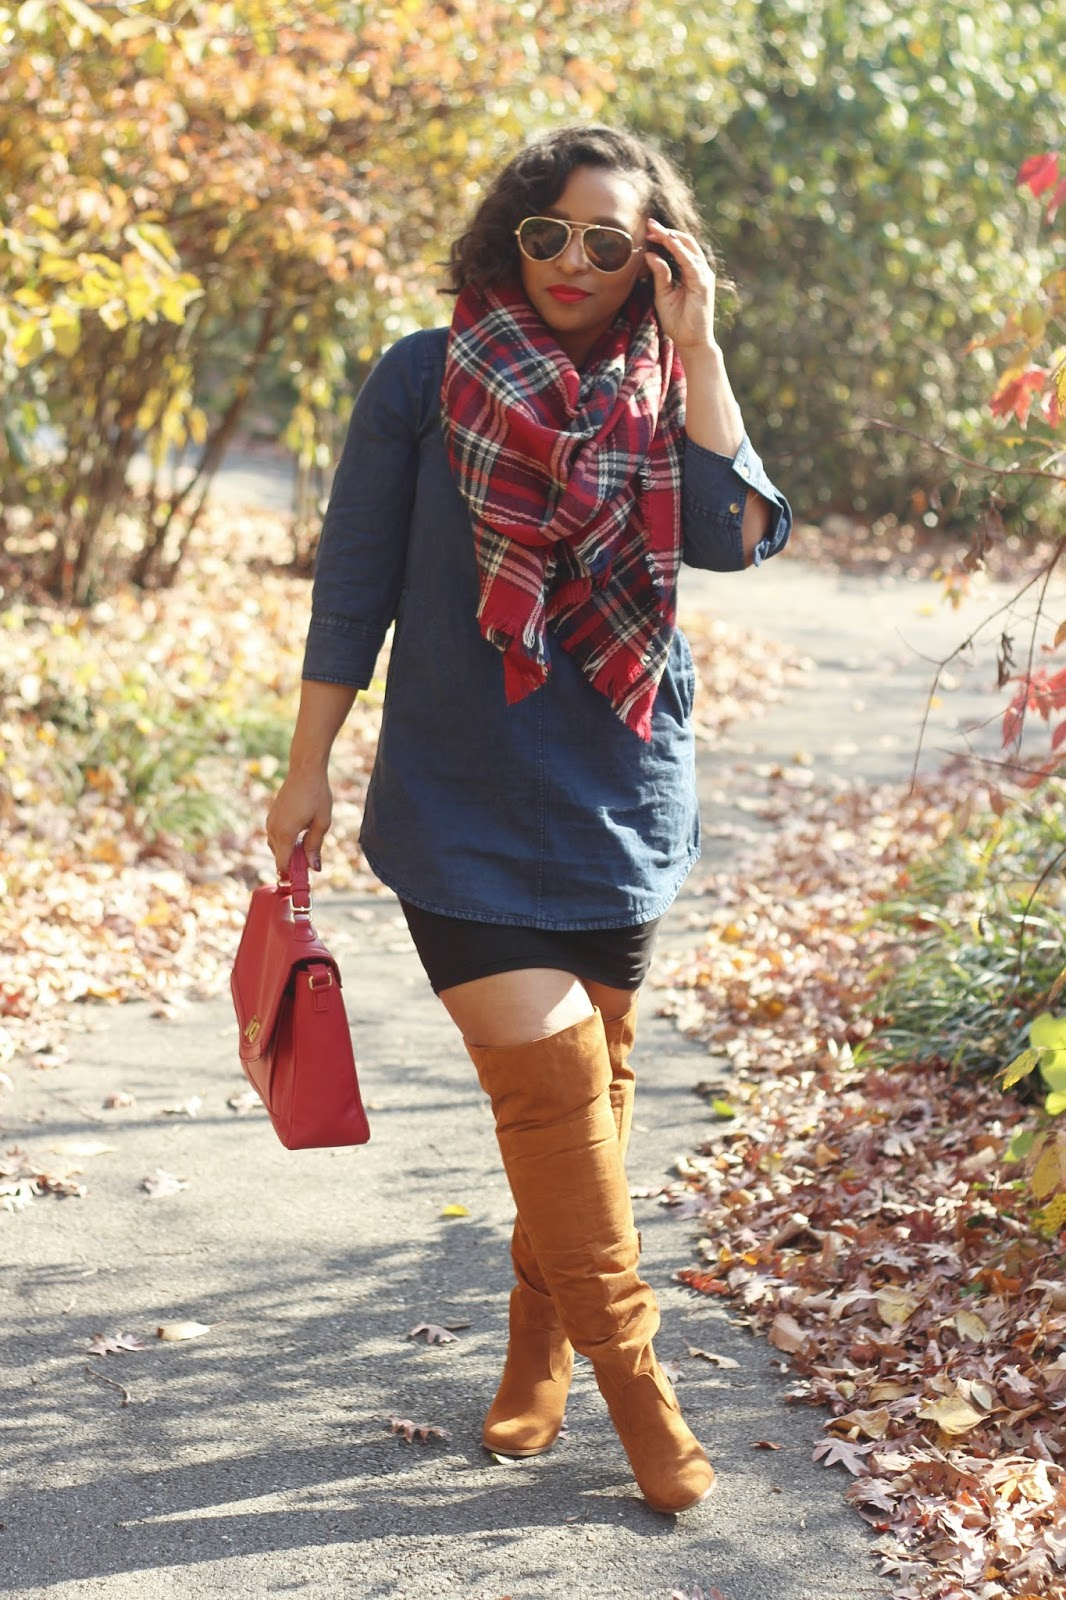 wide calf boots, oak boots, fall outfit ideas, plaid, blanket scarf outfits, Justfab boots